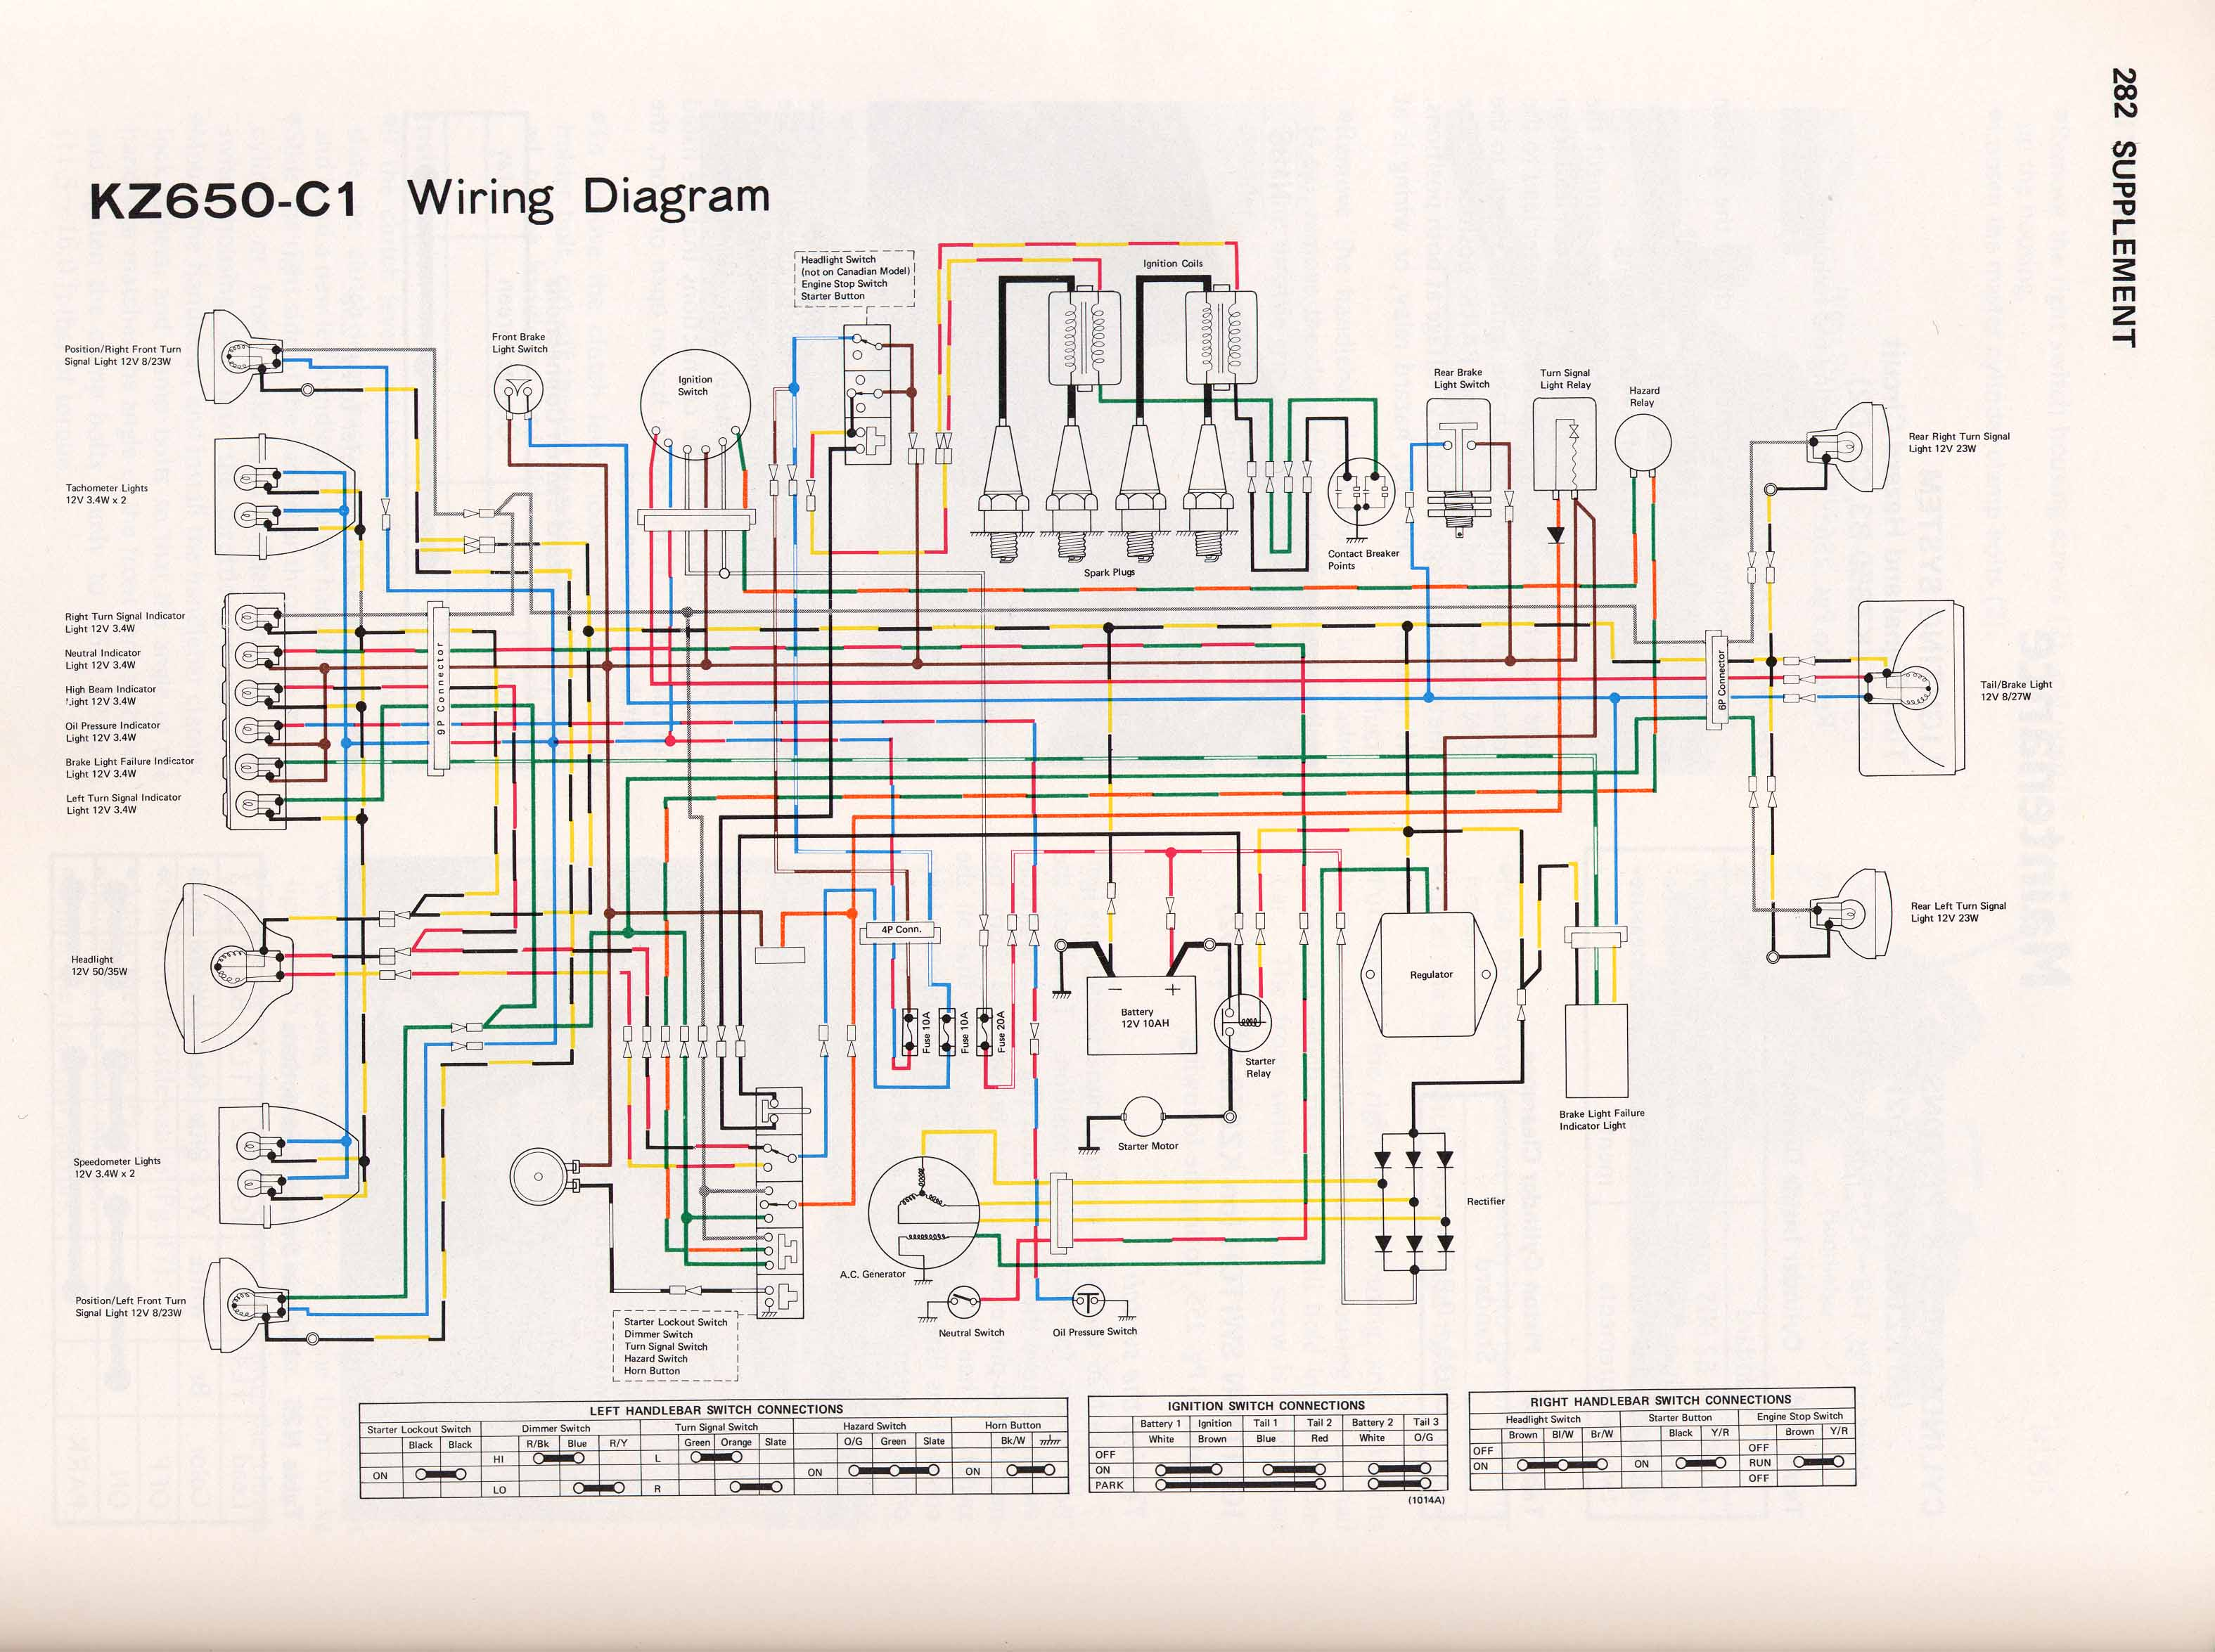 KZ650 C1 kz650 info wiring diagrams 82 Kawasaki LTD 750 Bobber at webbmarketing.co